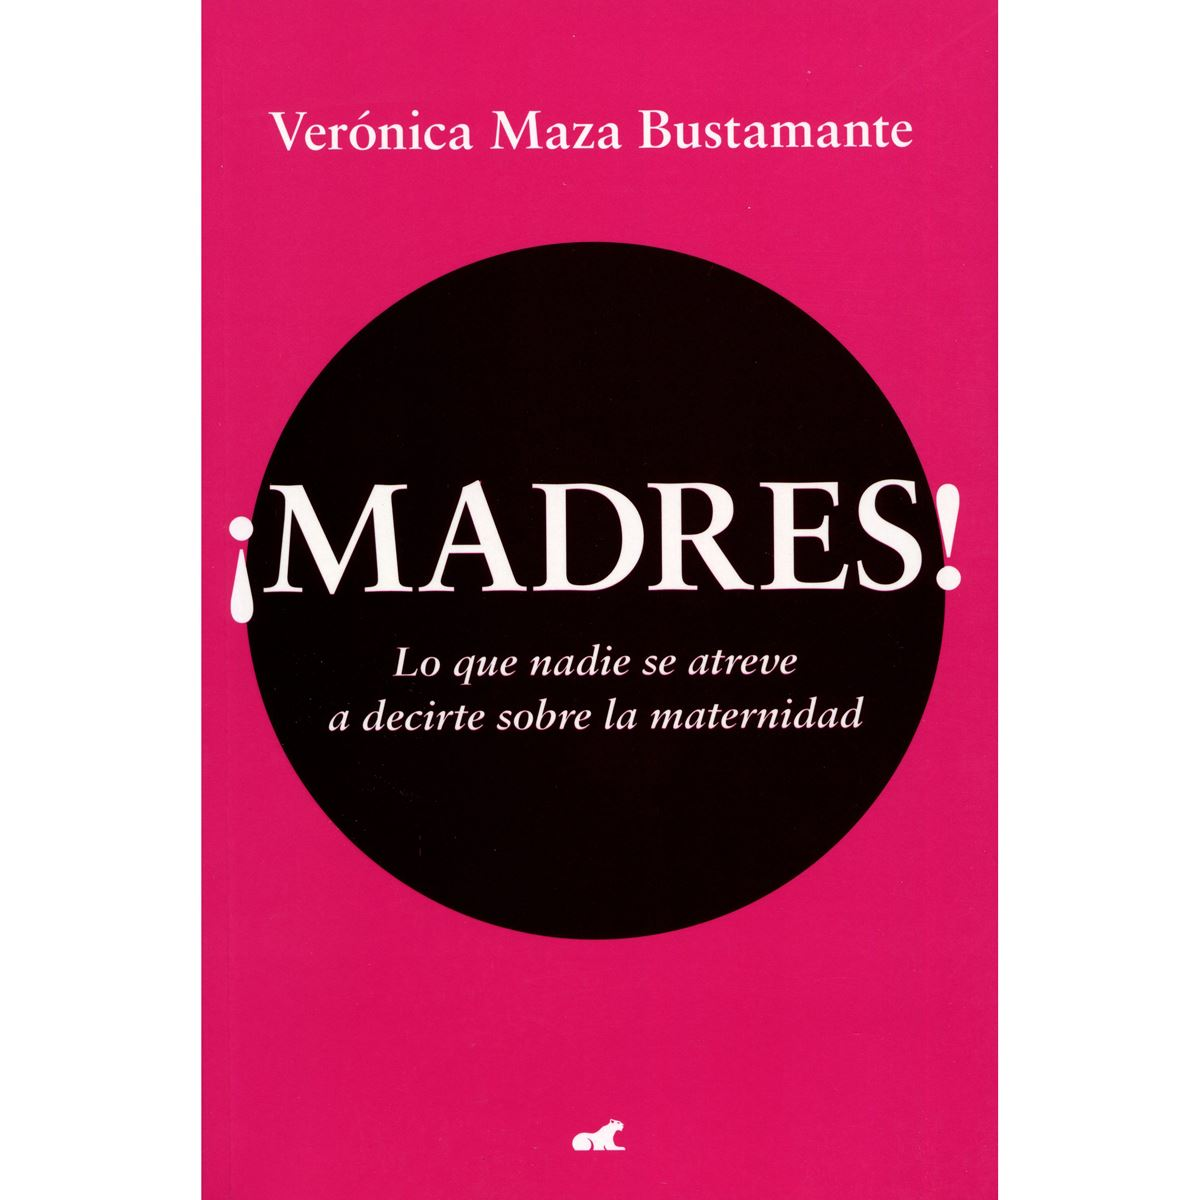 ¡Madres!